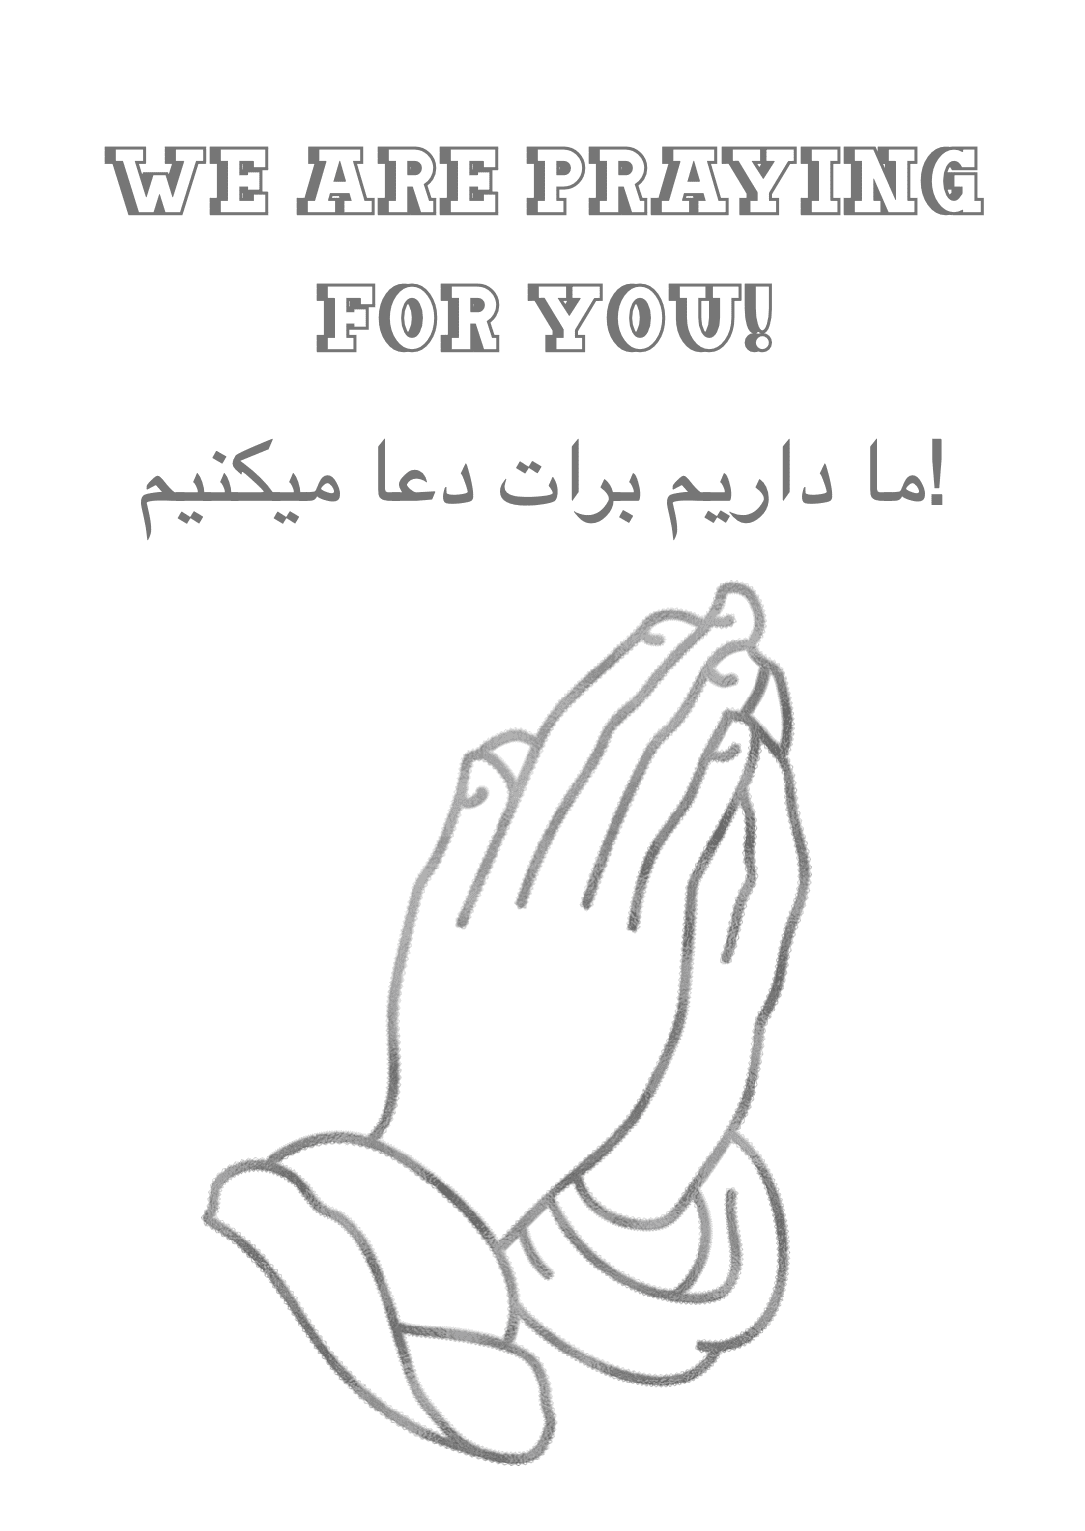 We Are Praying for You 1